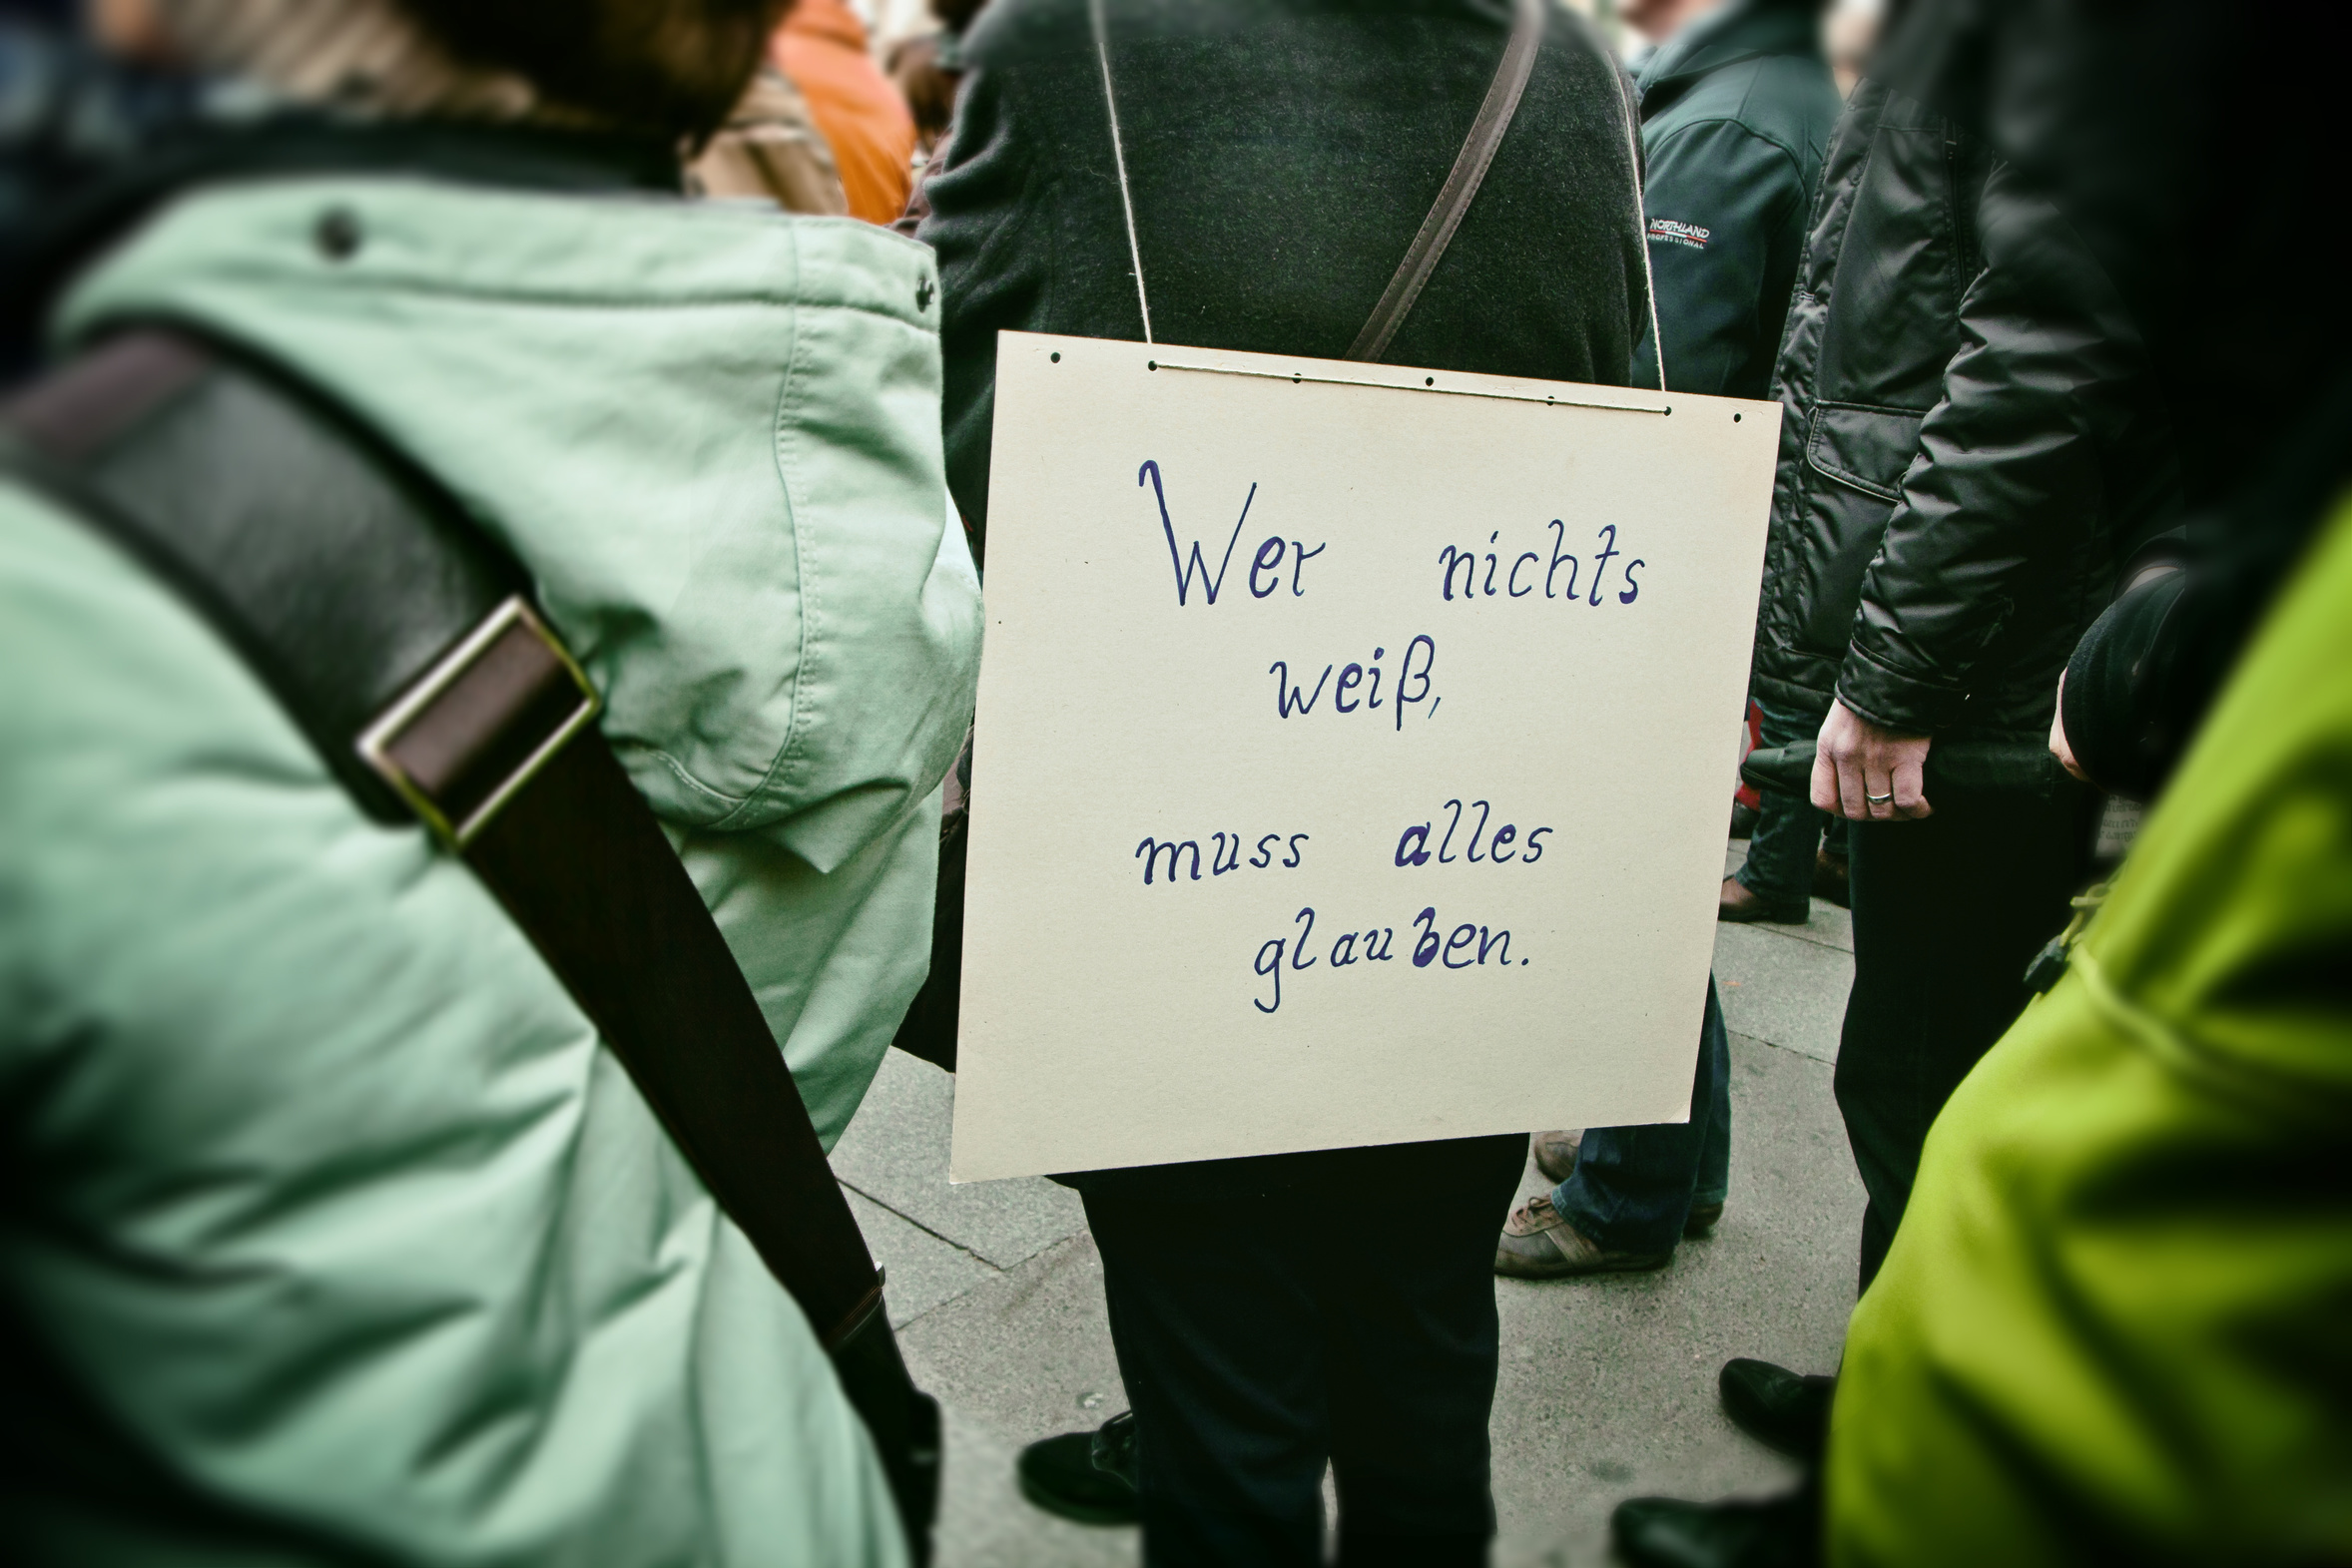 Plakat beim bundesweiten March for Science, 22. April 2017 (Foto: acrogame – fotolia.com)